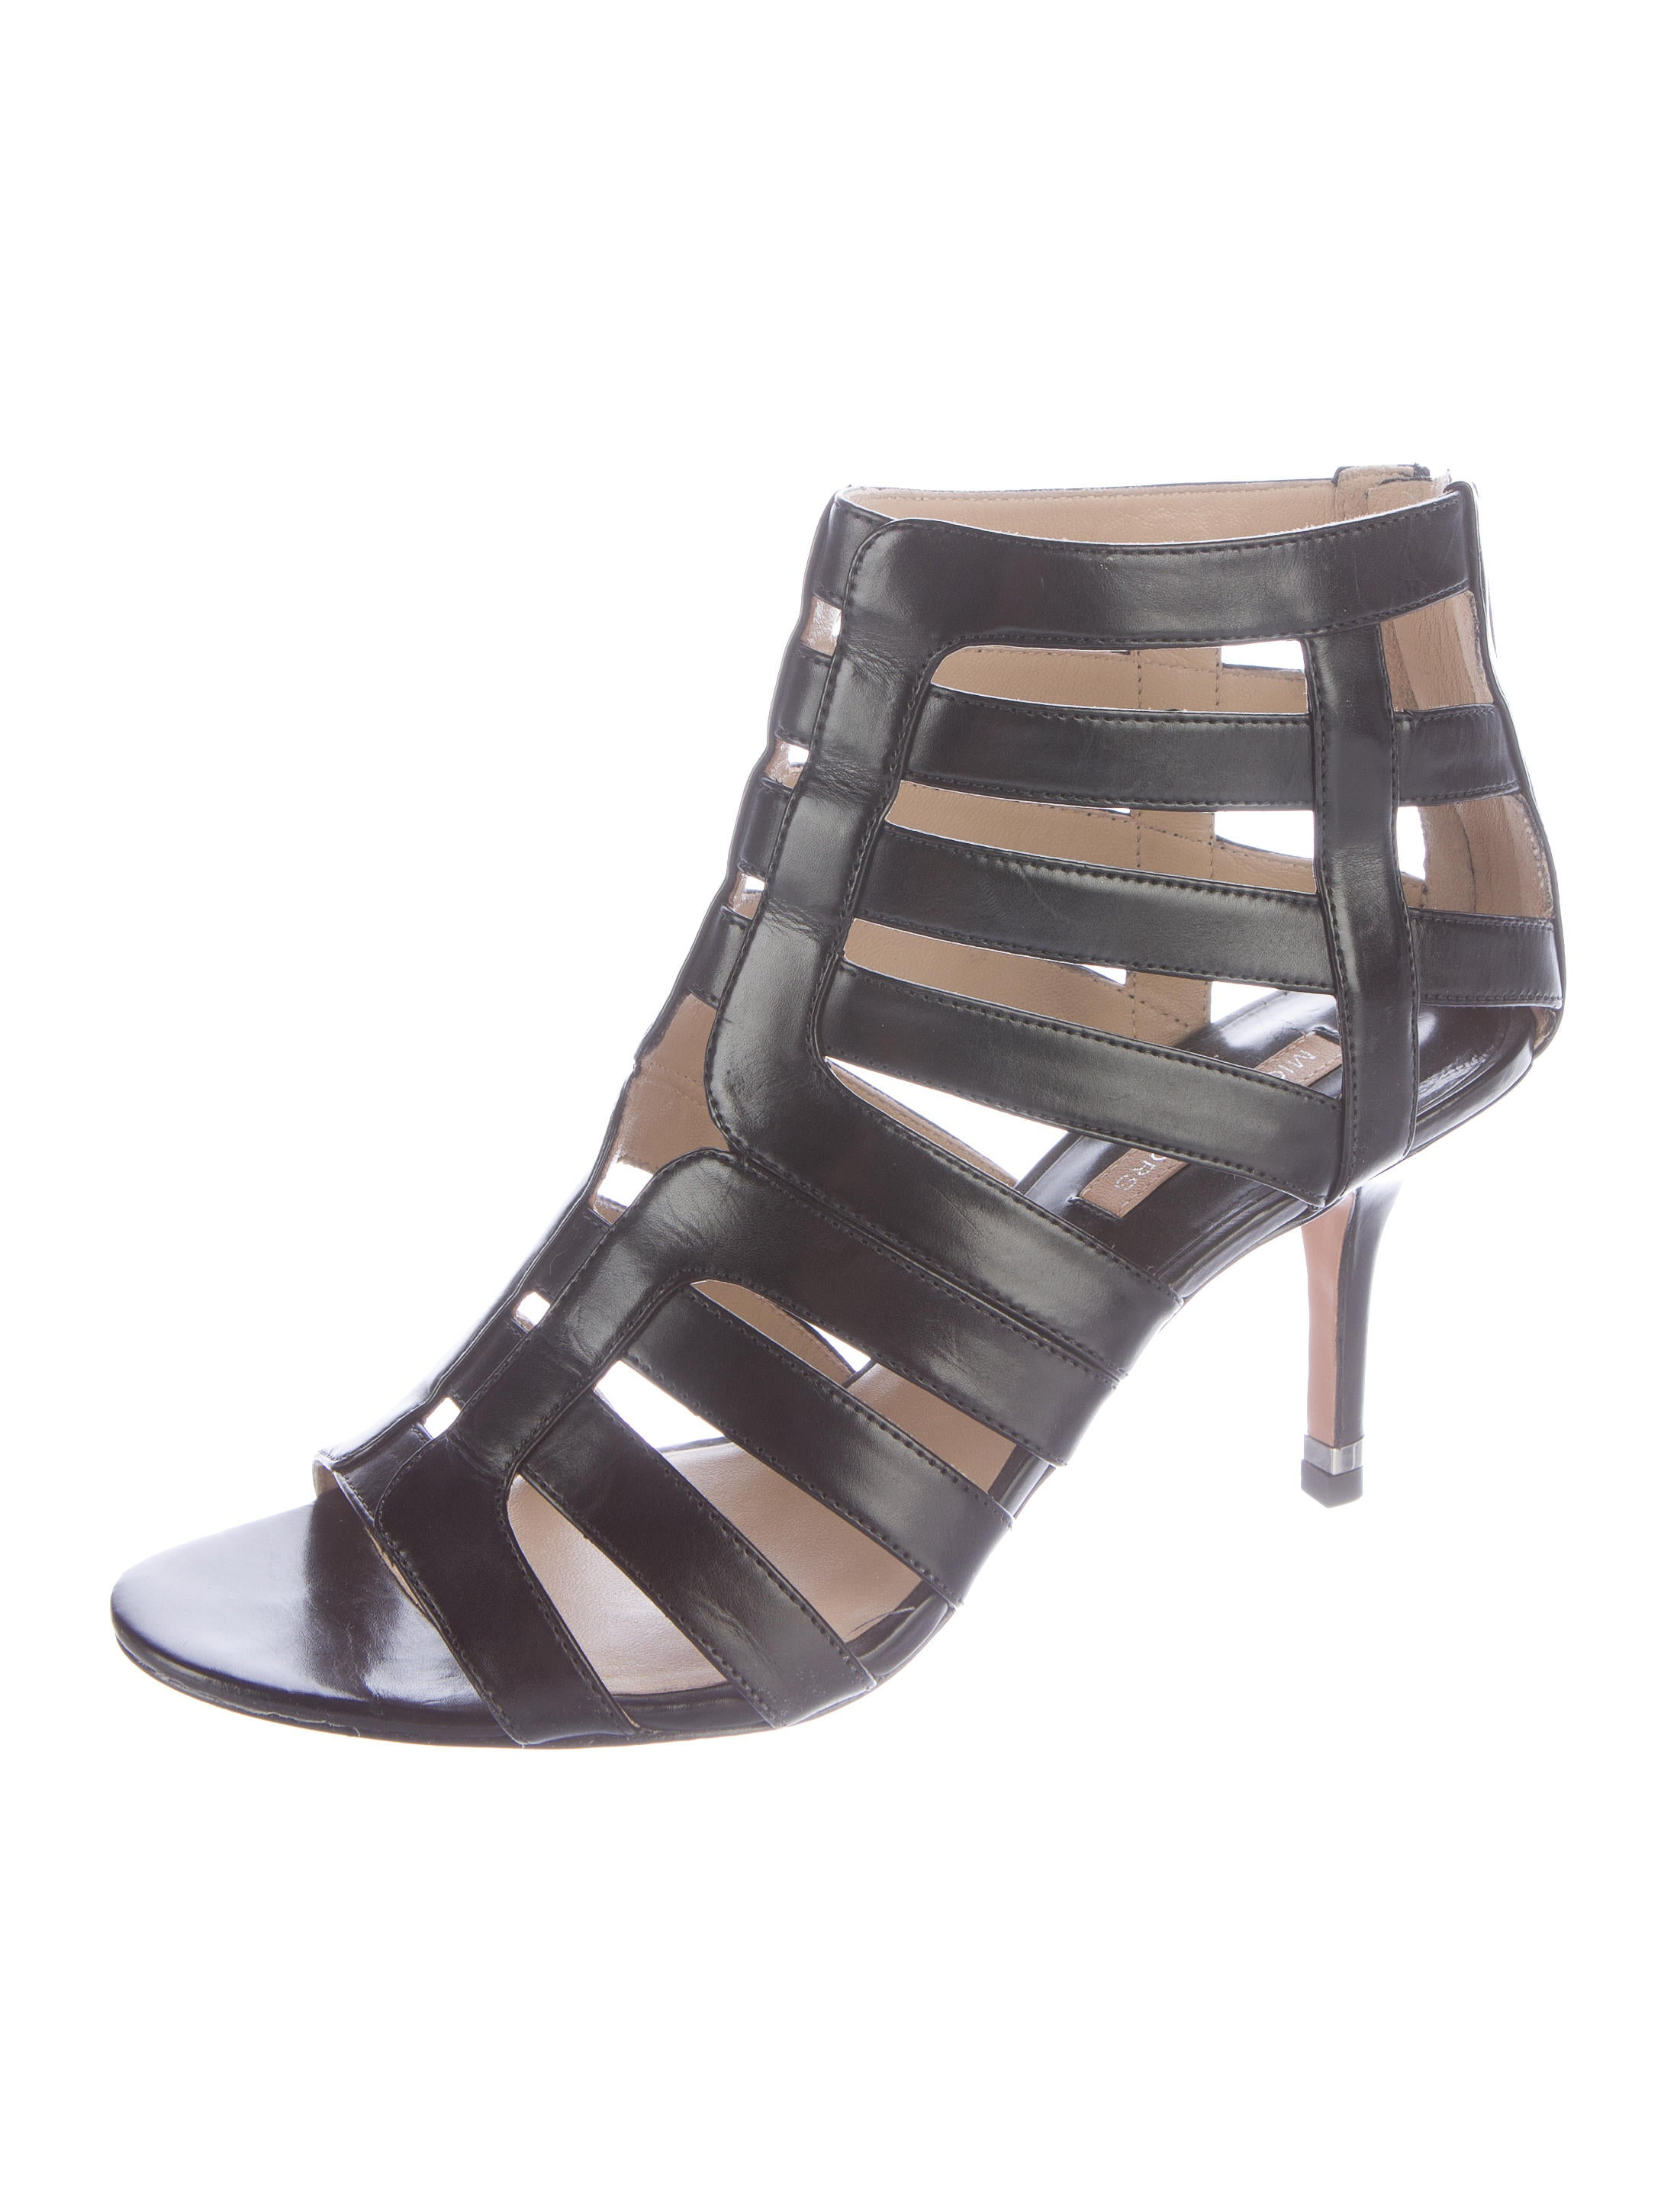 michael kors leather cage sandals shoes mic41941 the